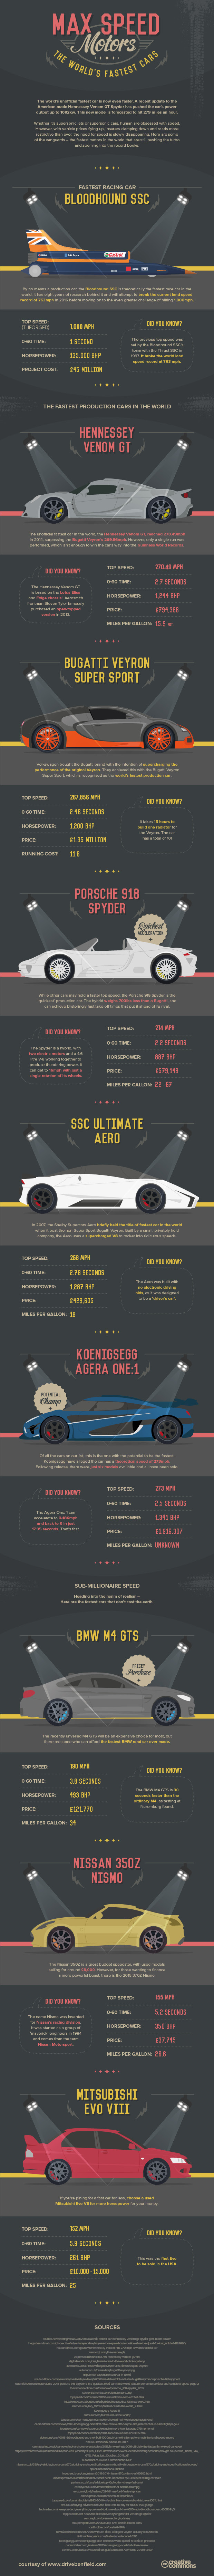 infographic-Benfield-Motors-the-worlds-fastest-cars